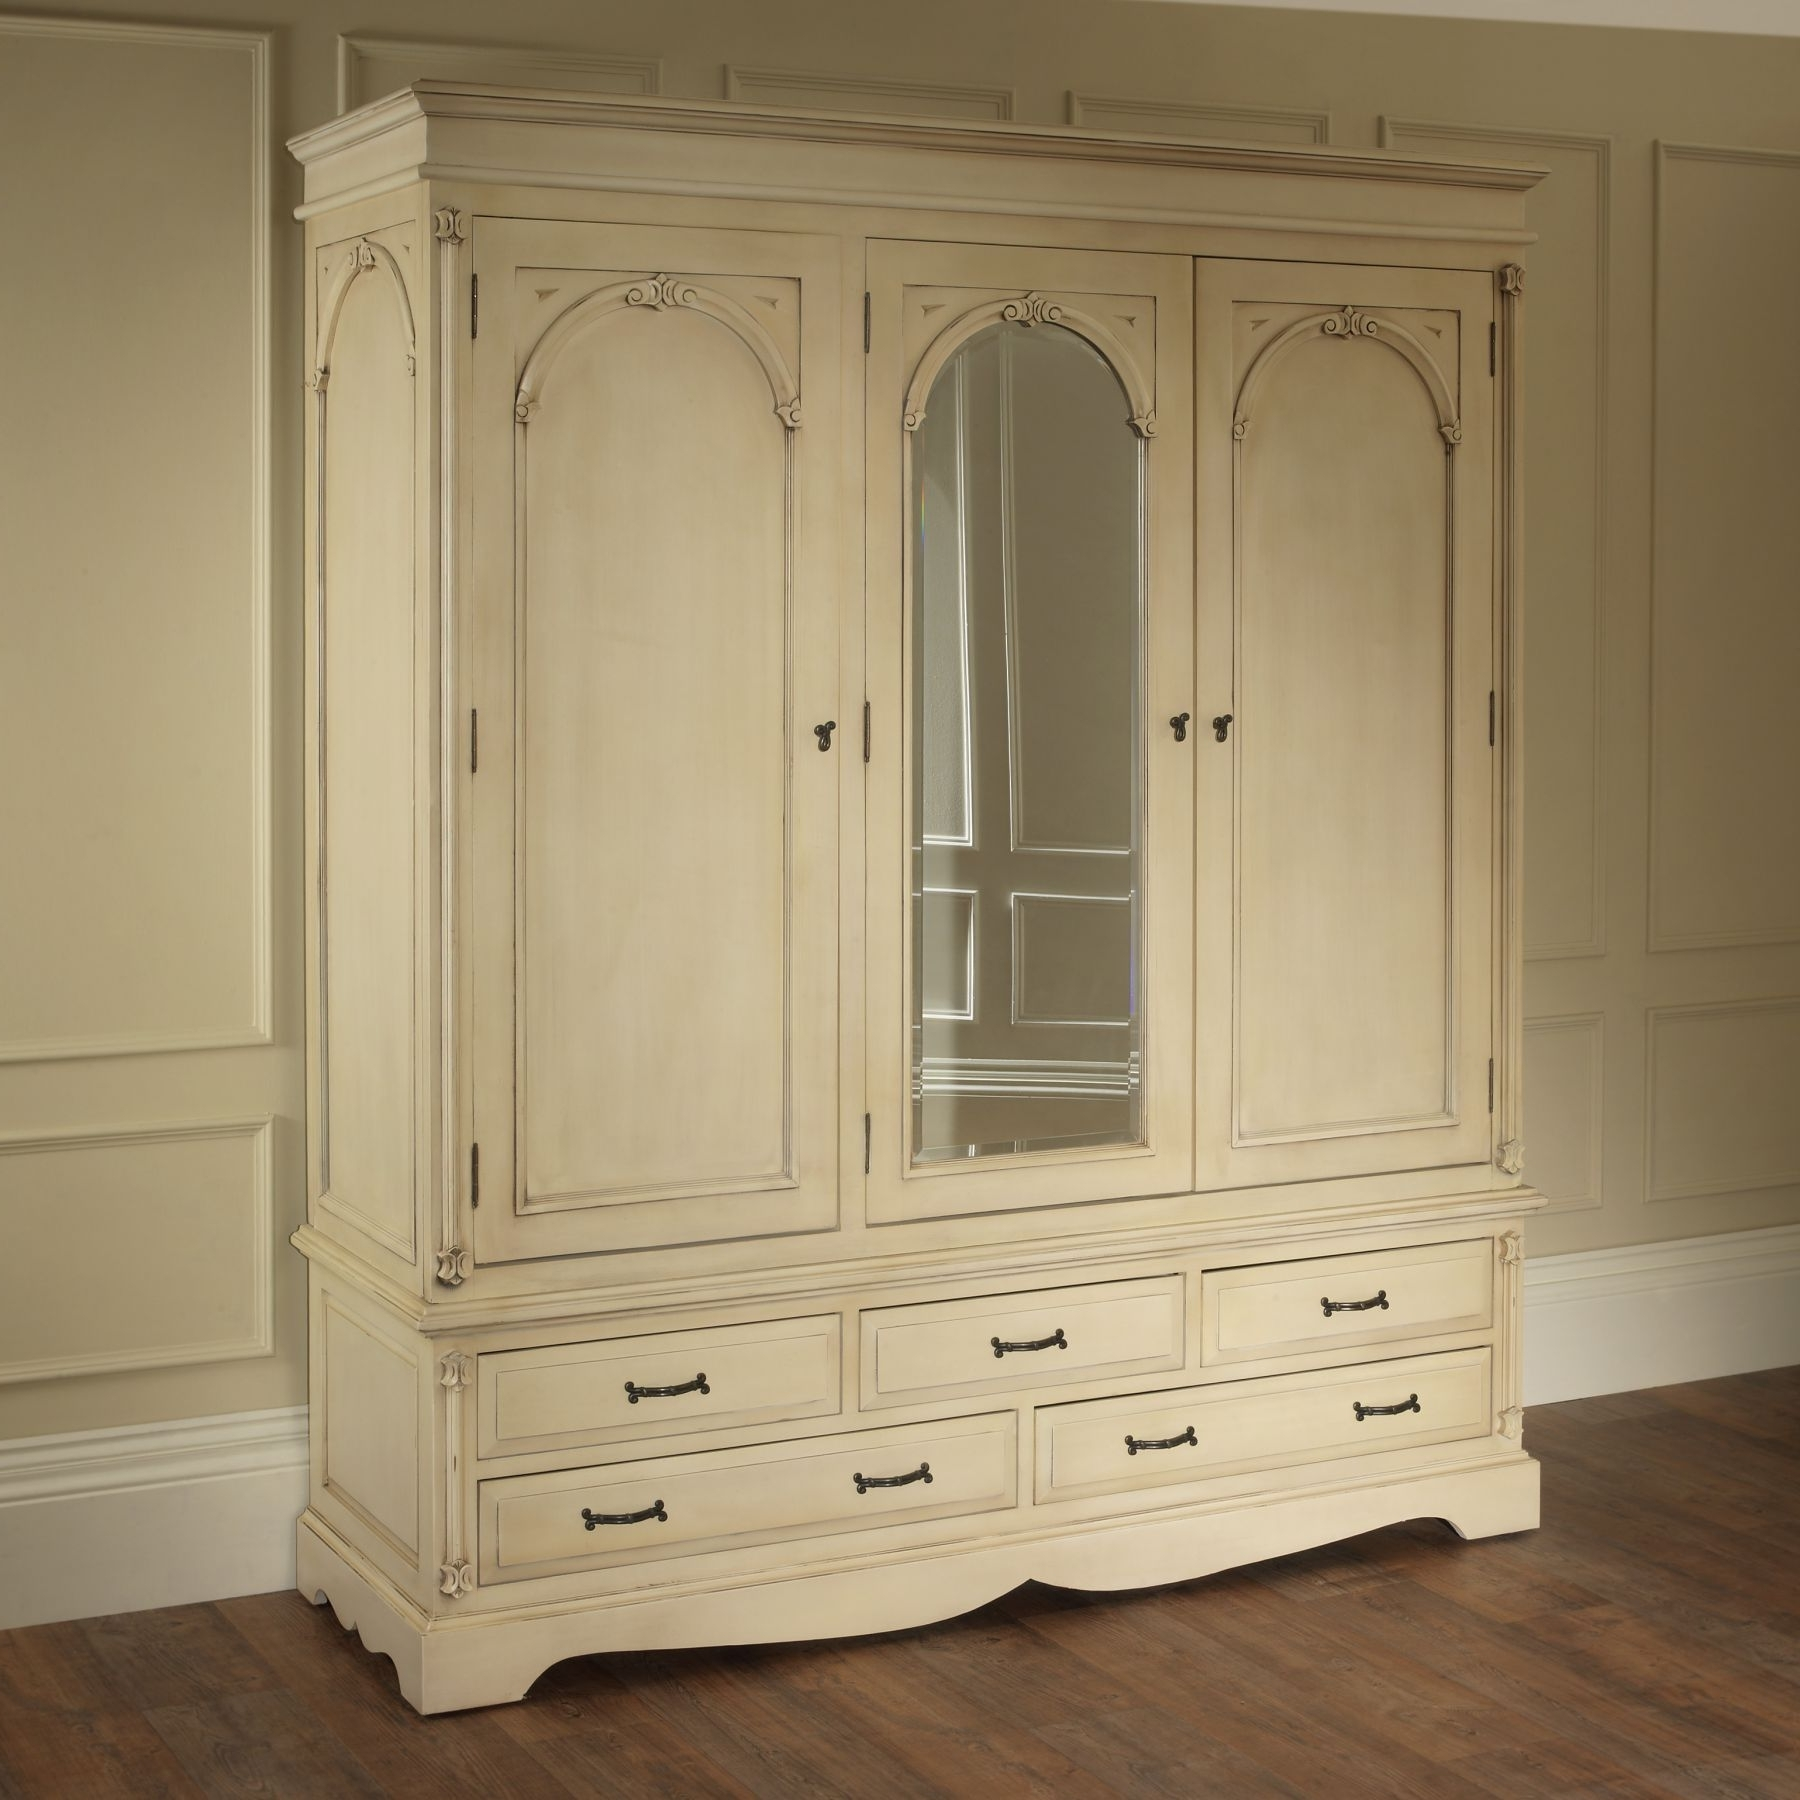 Most Up To Date Antique French Armoire For Sale Jewelry Armoires Large Bedroom In Throughout French Wardrobes For Sale (View 12 of 15)